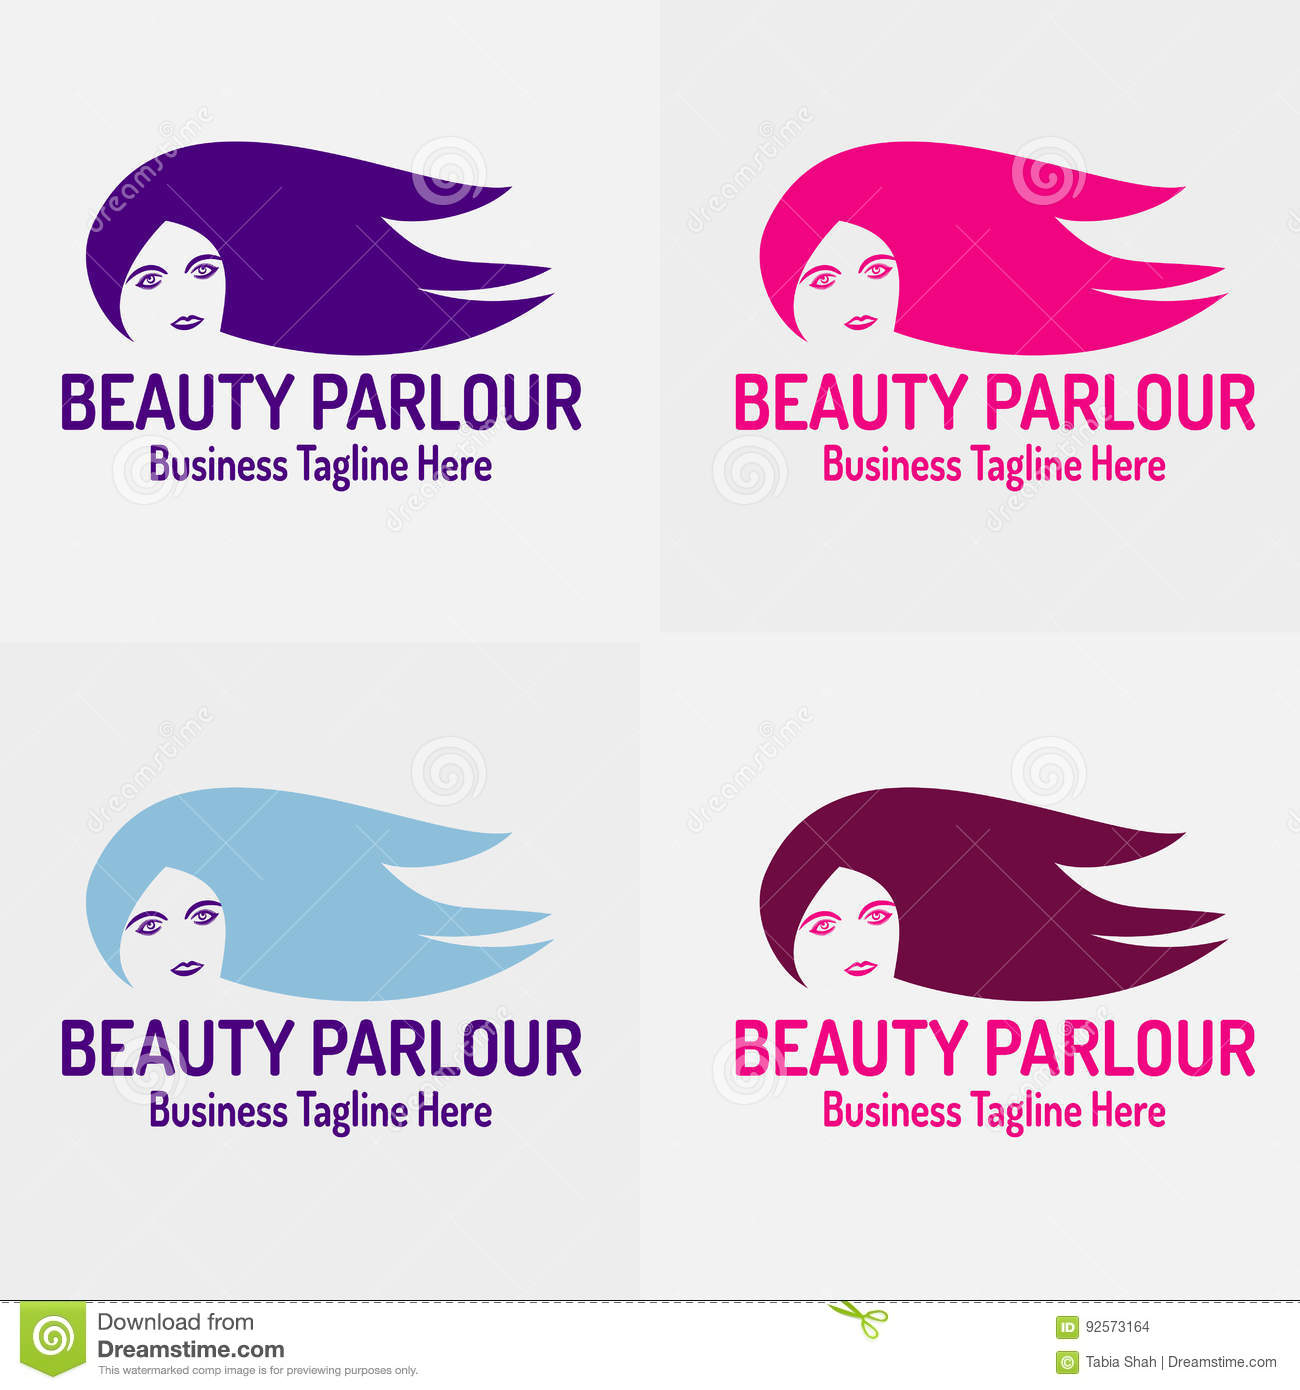 Beauty Parlor With Beautiful Girl Logo Vector Silhouette